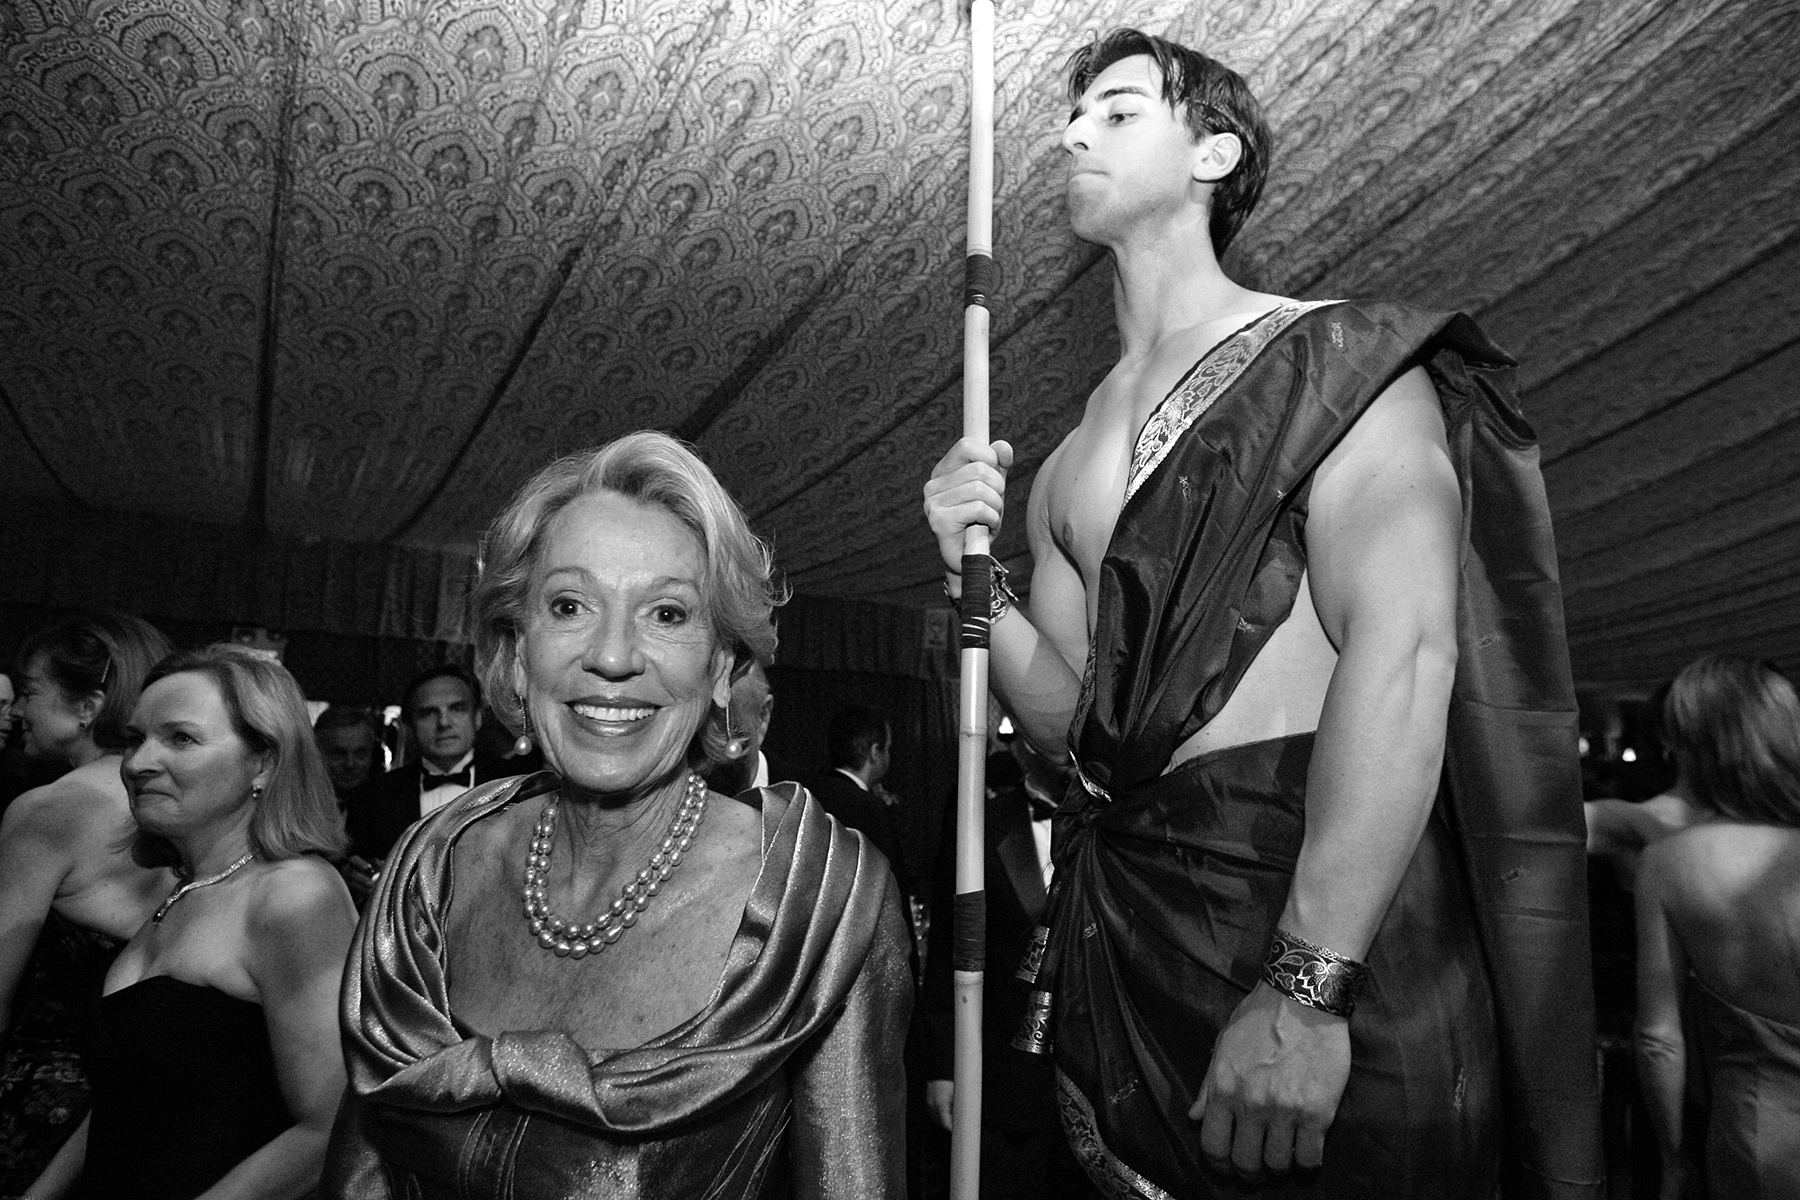 Charlotte Shultz walks past a model dressed as a temple guard from {quote}Samson and Delilah,{quote} the opera being performed that night, during the San Francisco Opera Ball in San Francisco, Calif., on Friday, September 7, 2007. The large galas to celebrate the openings of the opera, symphony and ballet and those in support of local museums are some of the most high profile parties to attend for people who wish to be a part of San Francisco high society.This photograph is of a candid moment and was not directed in any way.